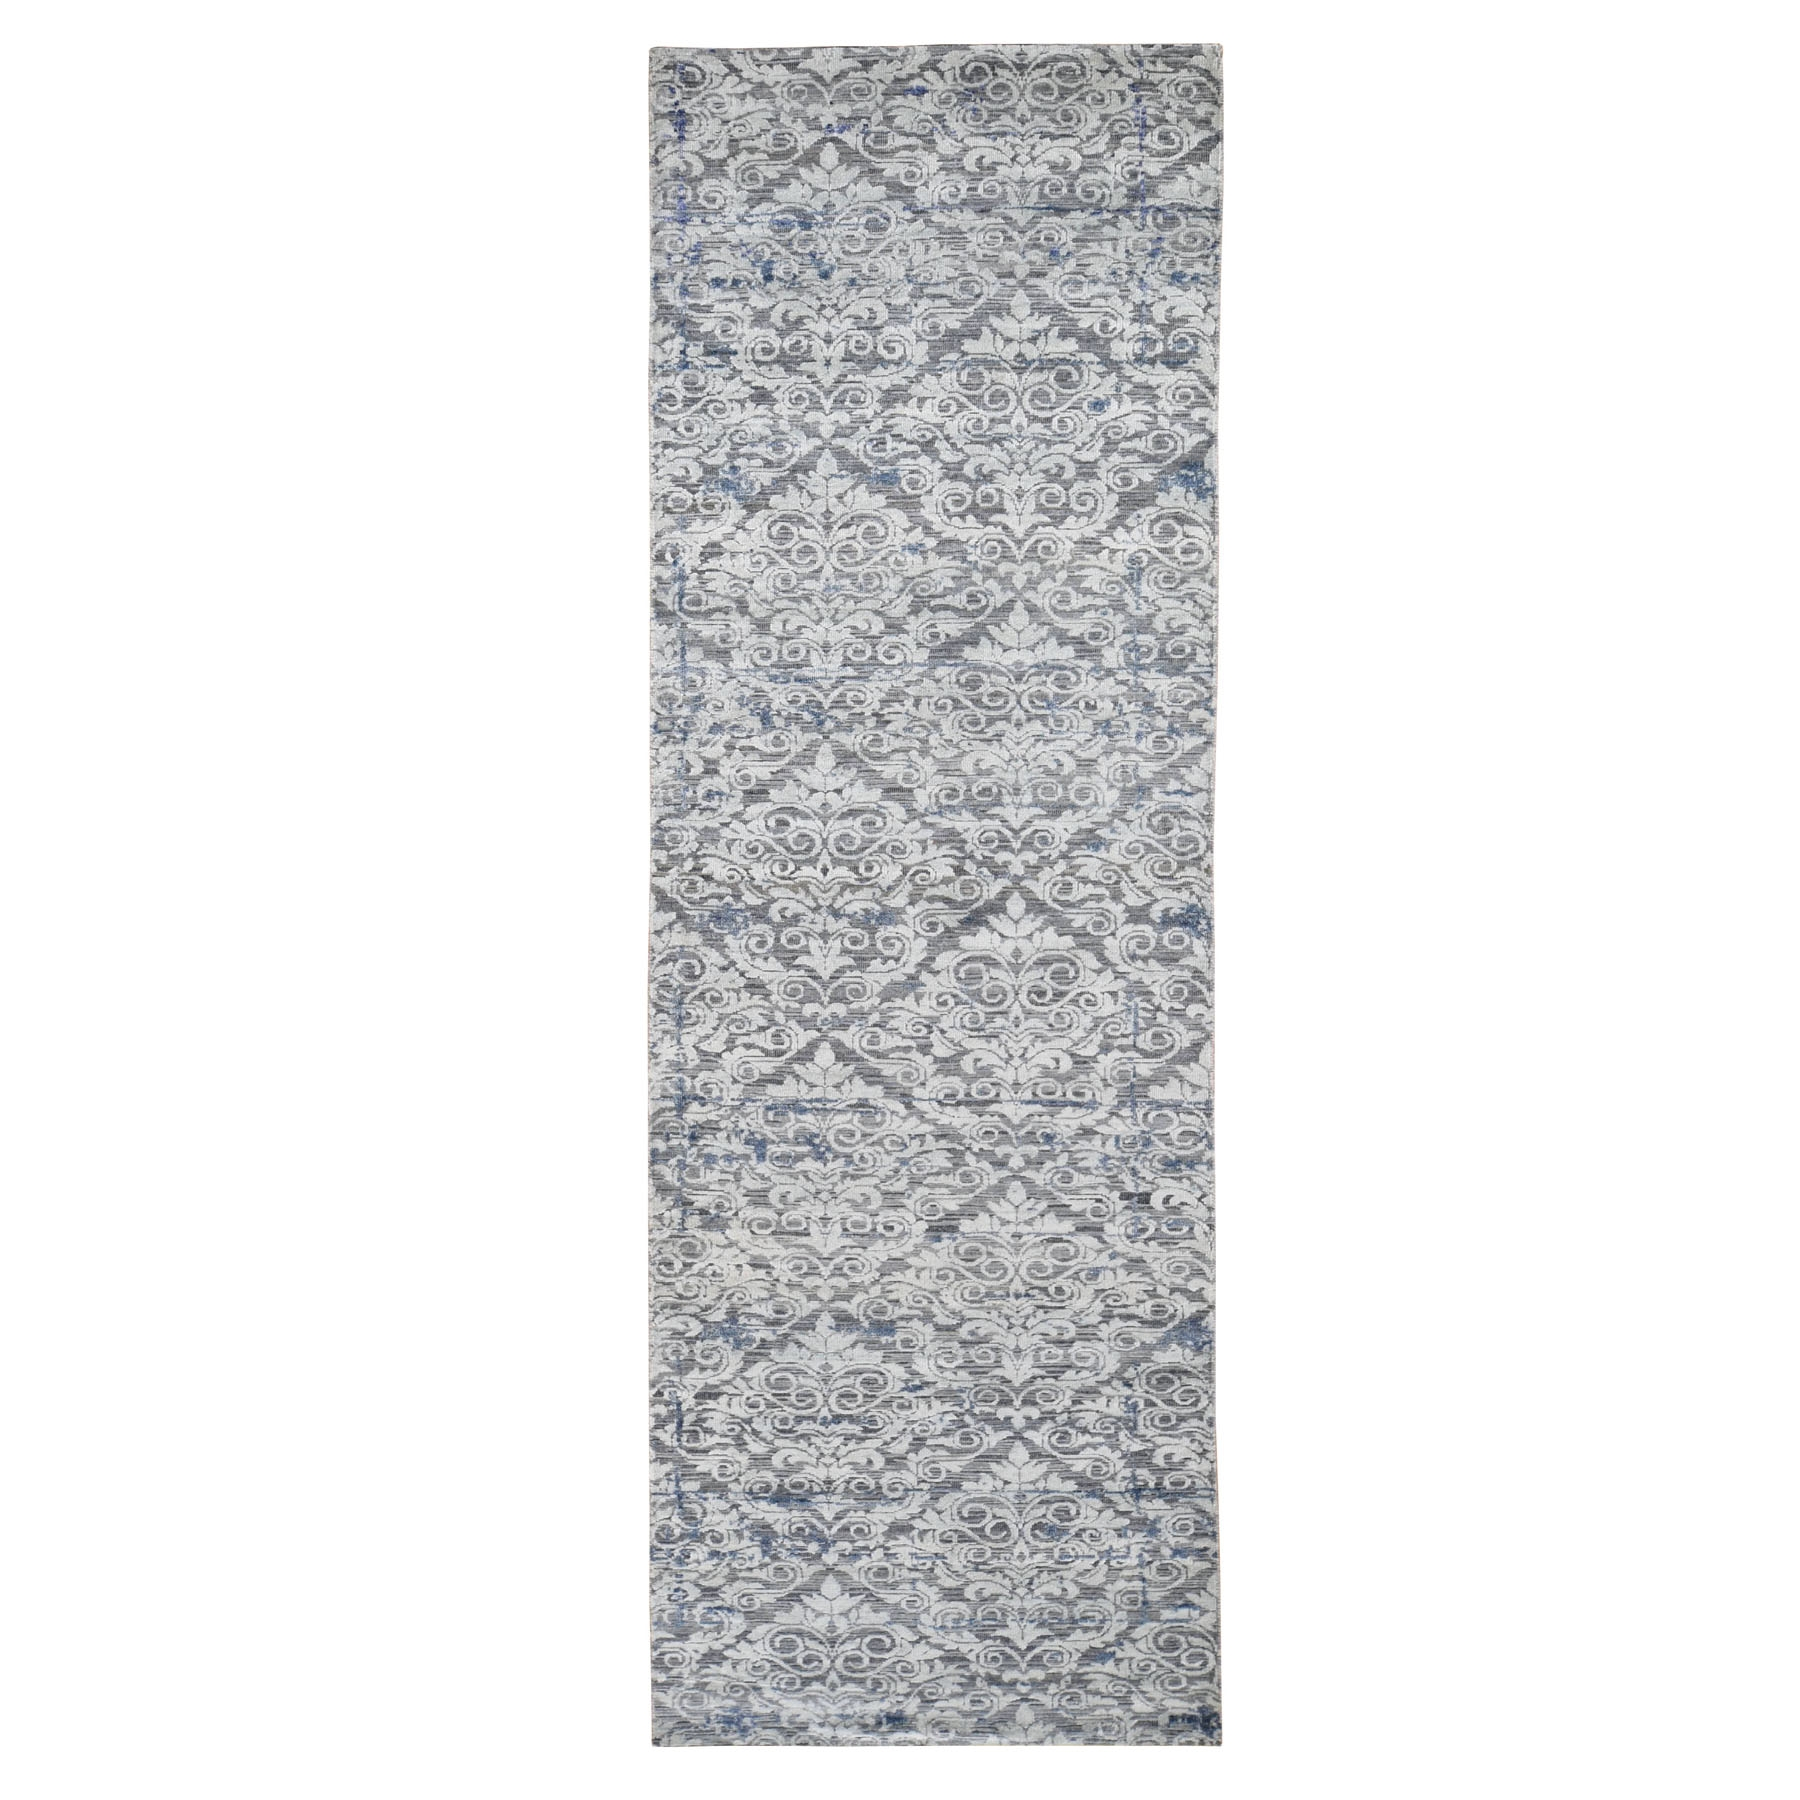 "3'x11'10"" Gray Silk With Textured Wool Trellis Garden Design Runner Hand Knotted Oriental Rug"